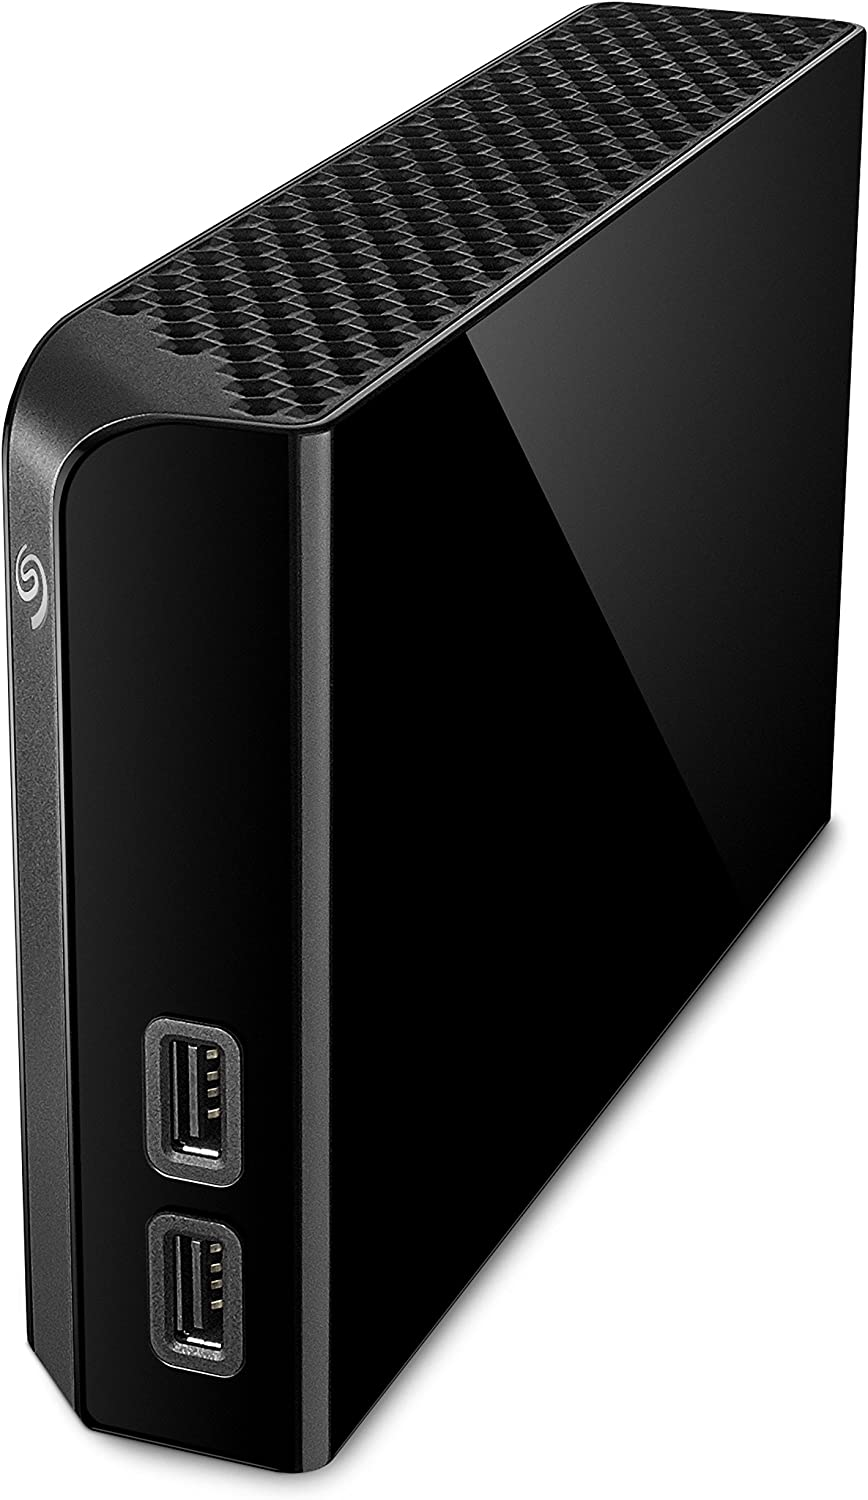 "Seagate Backup Plus Hub STEL4000200 4 TB 3.5"" External Hard Drive"